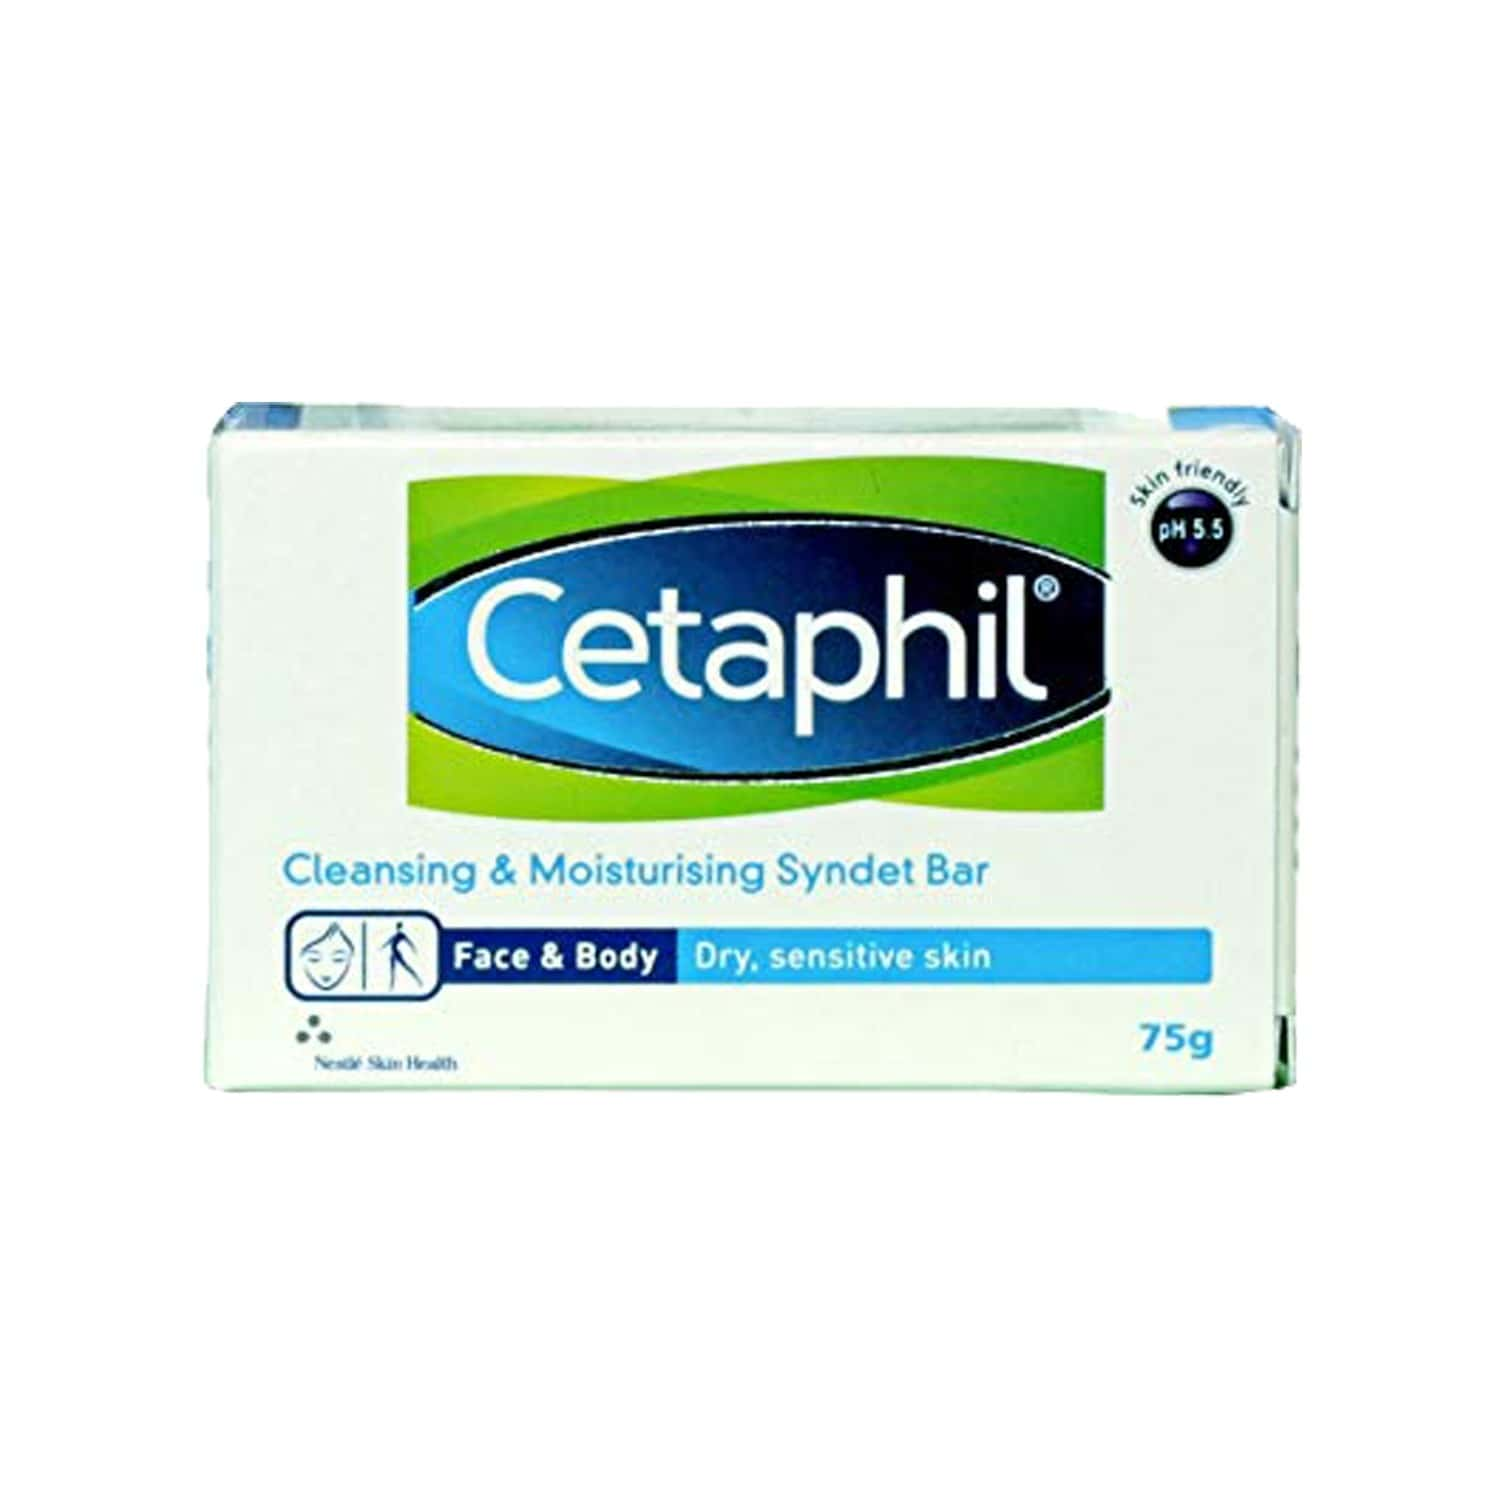 Cetaphil Cleansing And Moisturising Syndet Bar - 75g